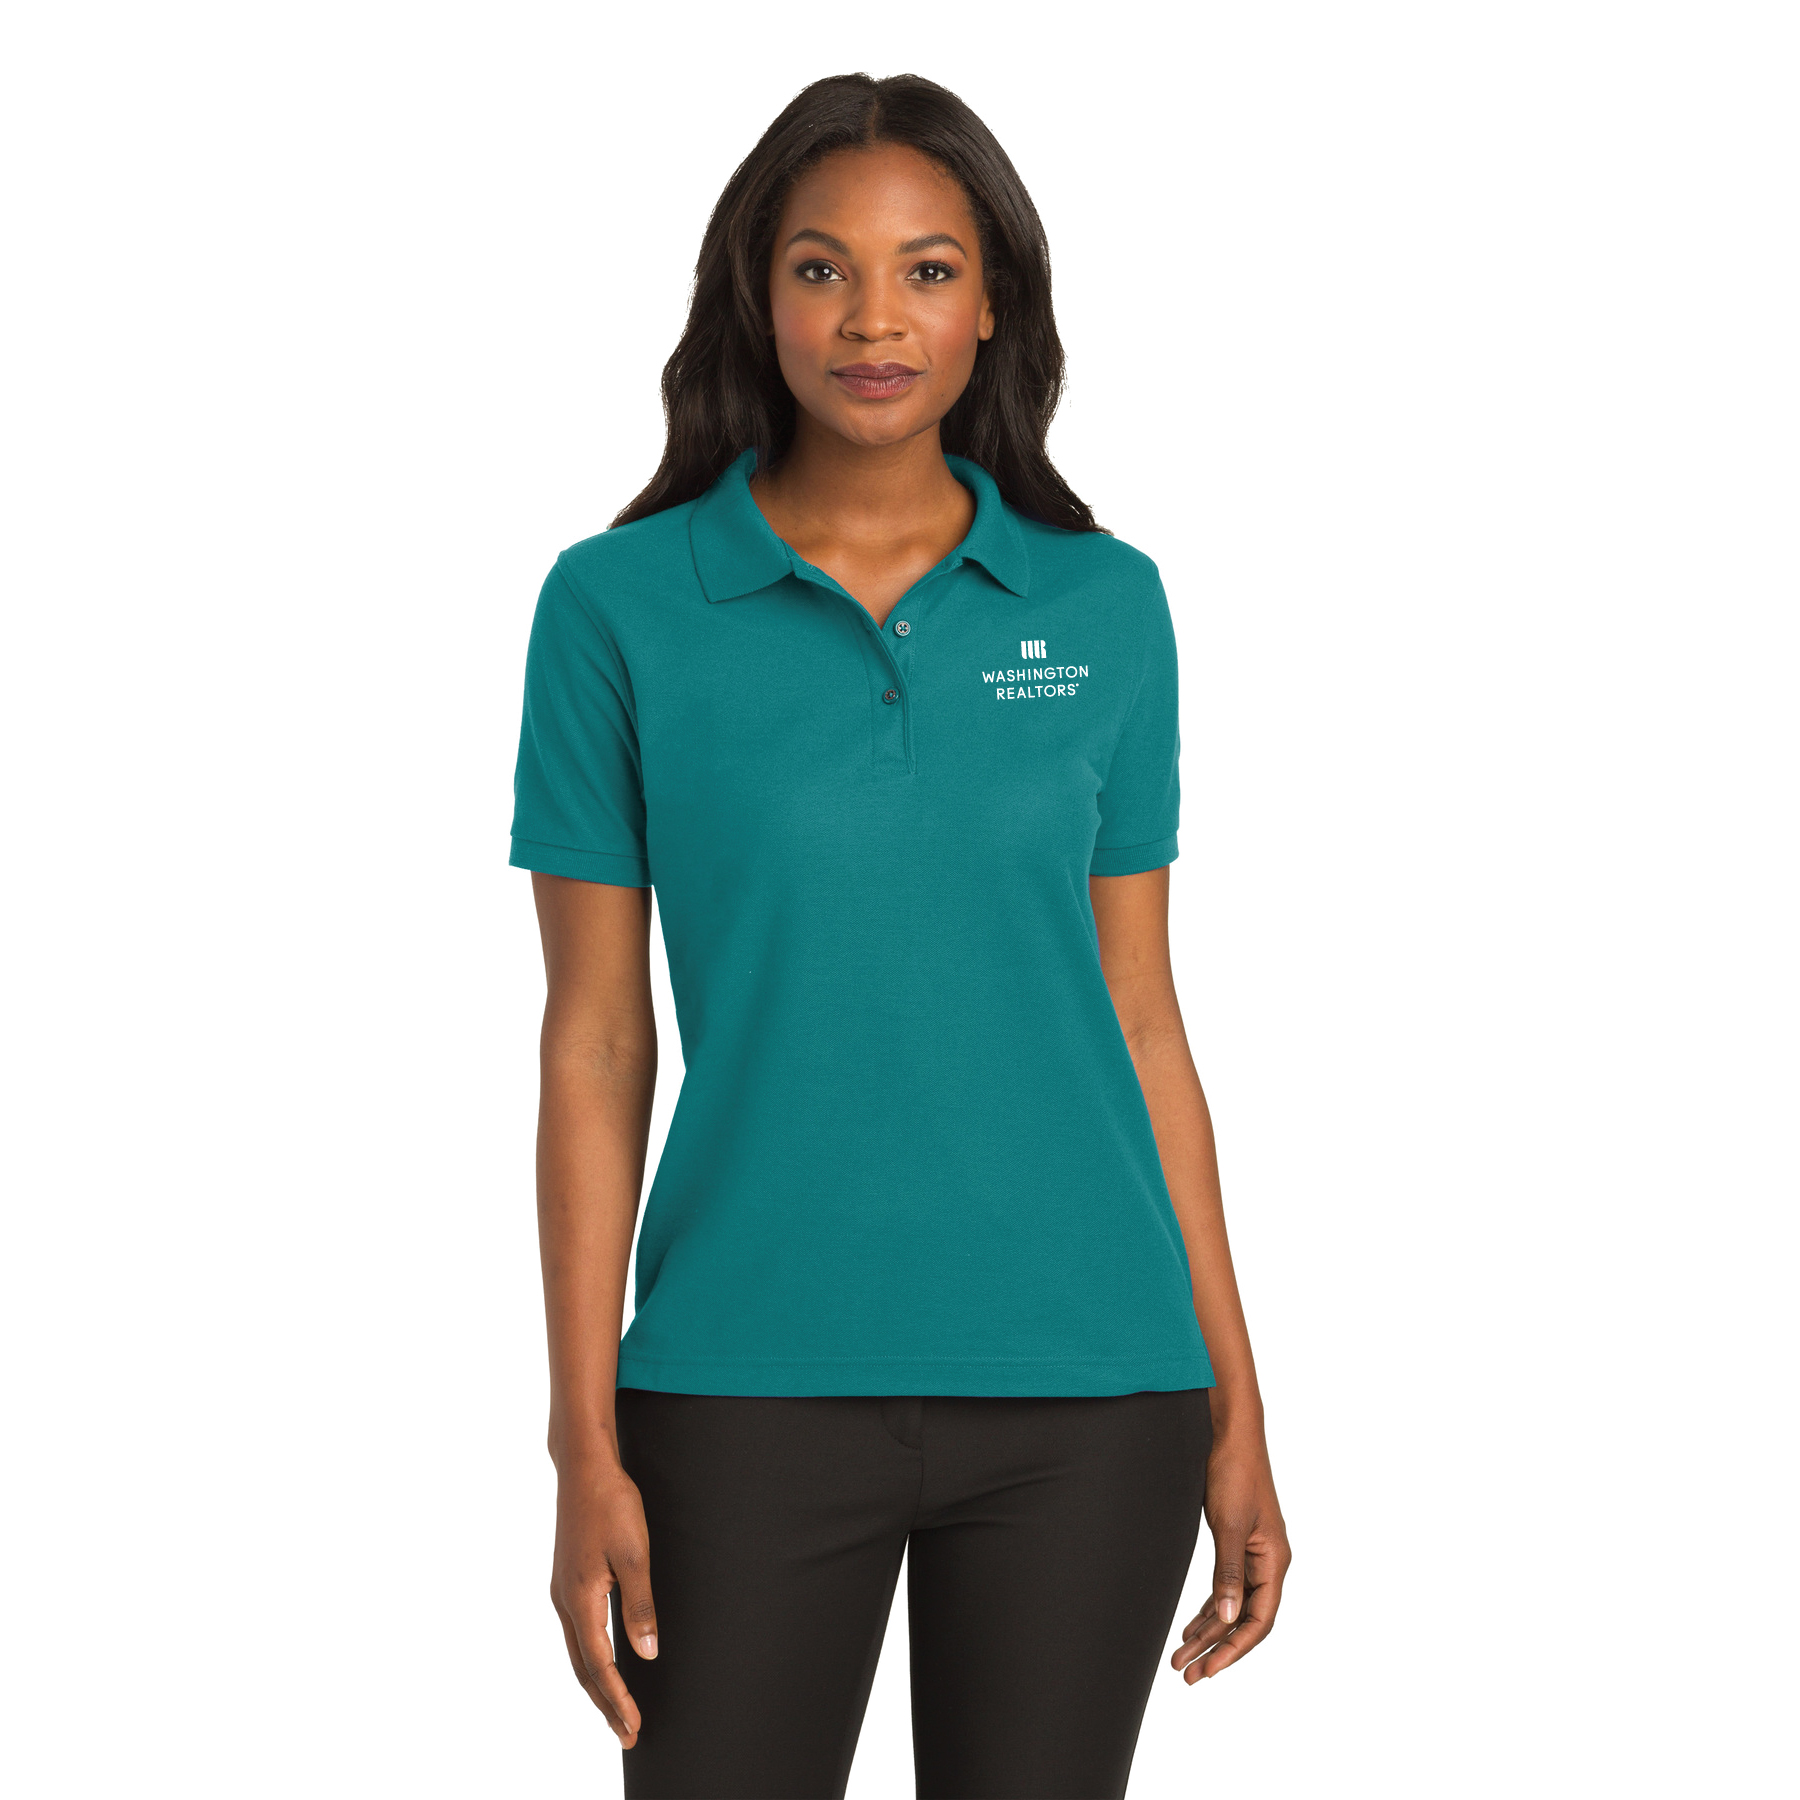 Washington REALTORS® Ladies Pique Polo Shirt